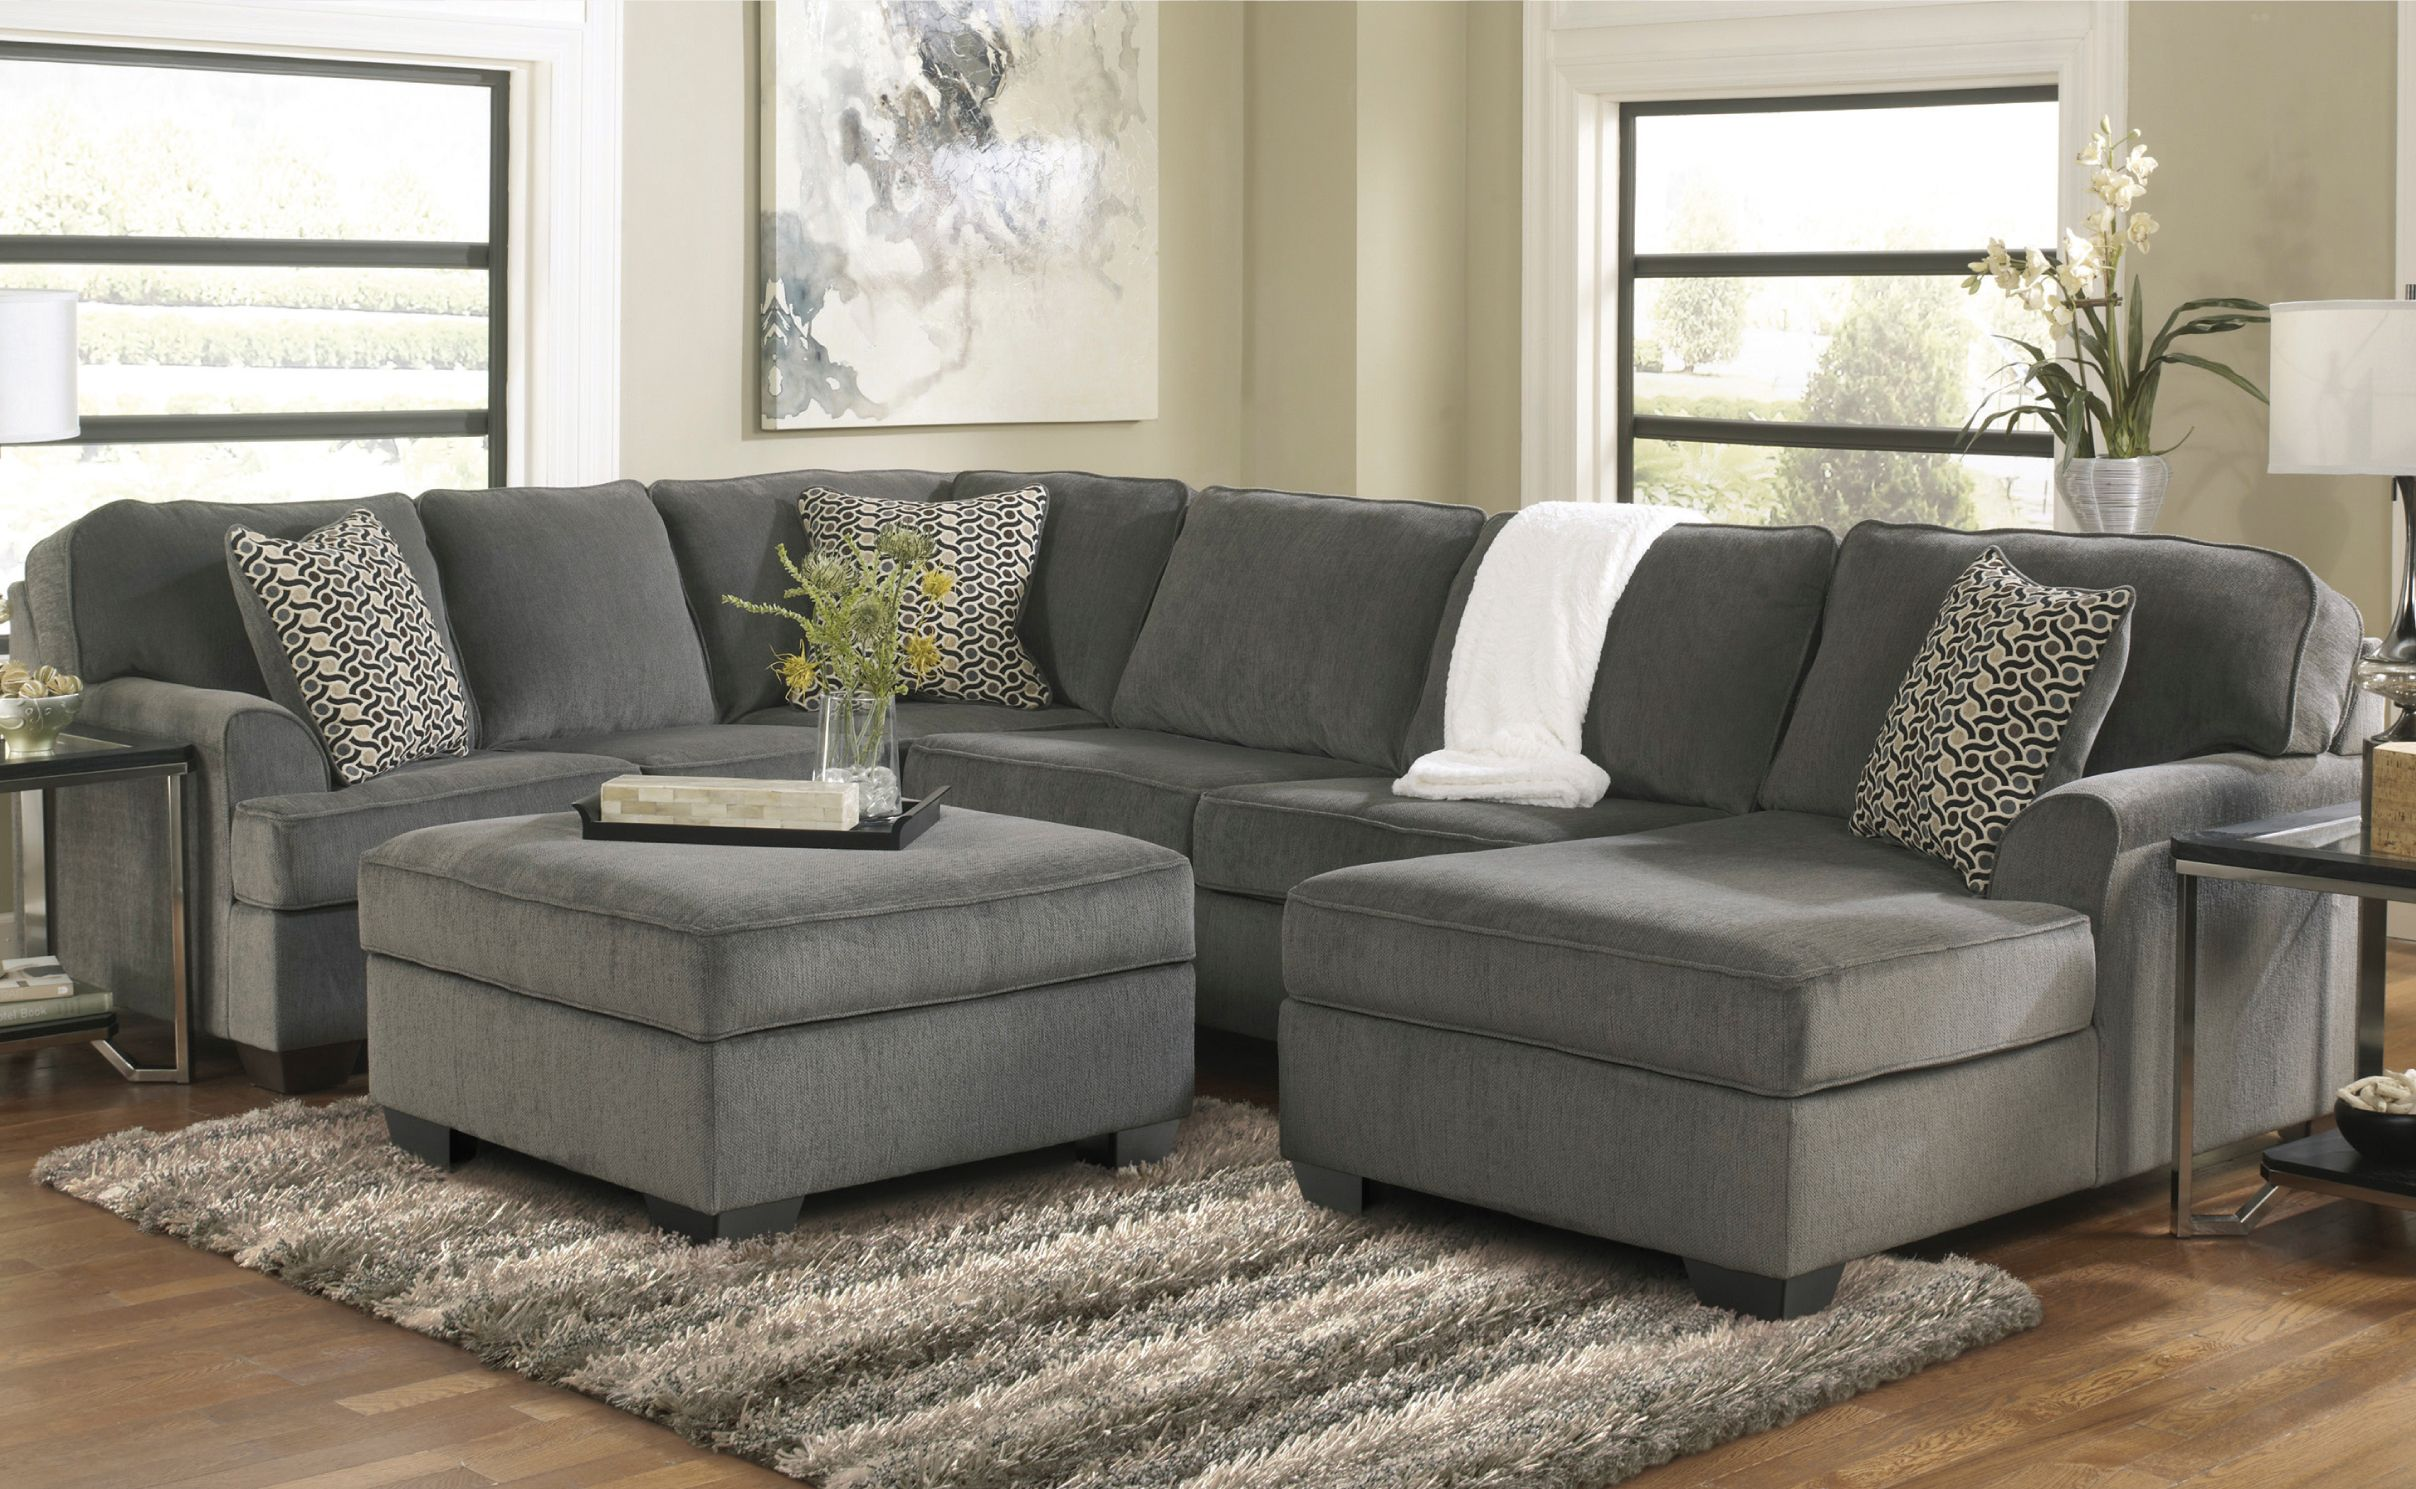 Couches On Clearance In 2020 Cheap Living Room Furniture Cheap